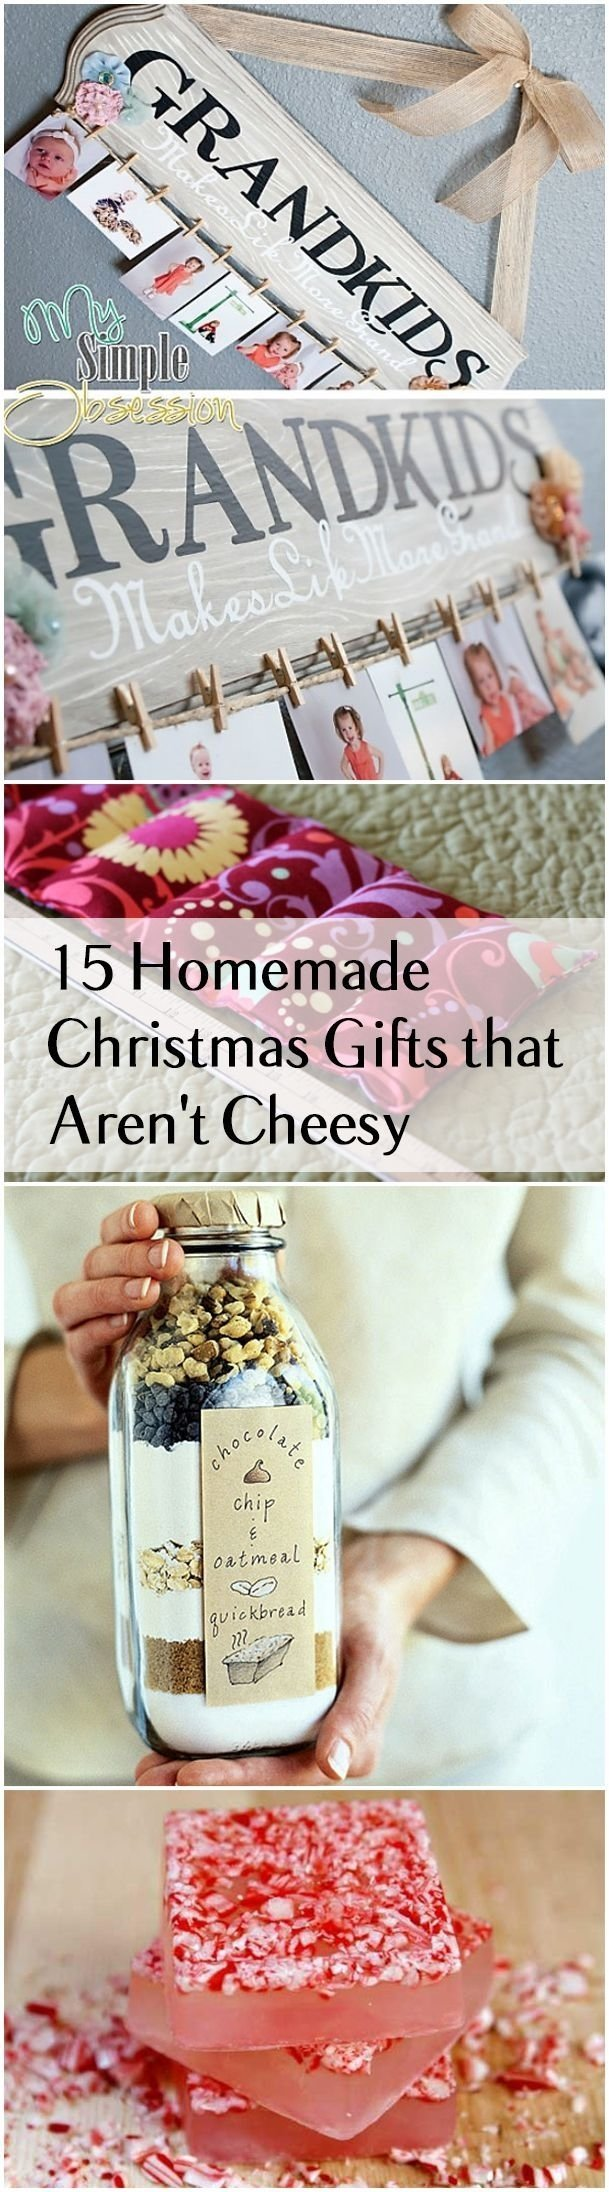 10 best homemade christmas gift ideas for girlfriend 10 best homemade christmas gift ideas for girlfriend 200 best diy christmas gifts images on pinterest solutioingenieria Choice Image